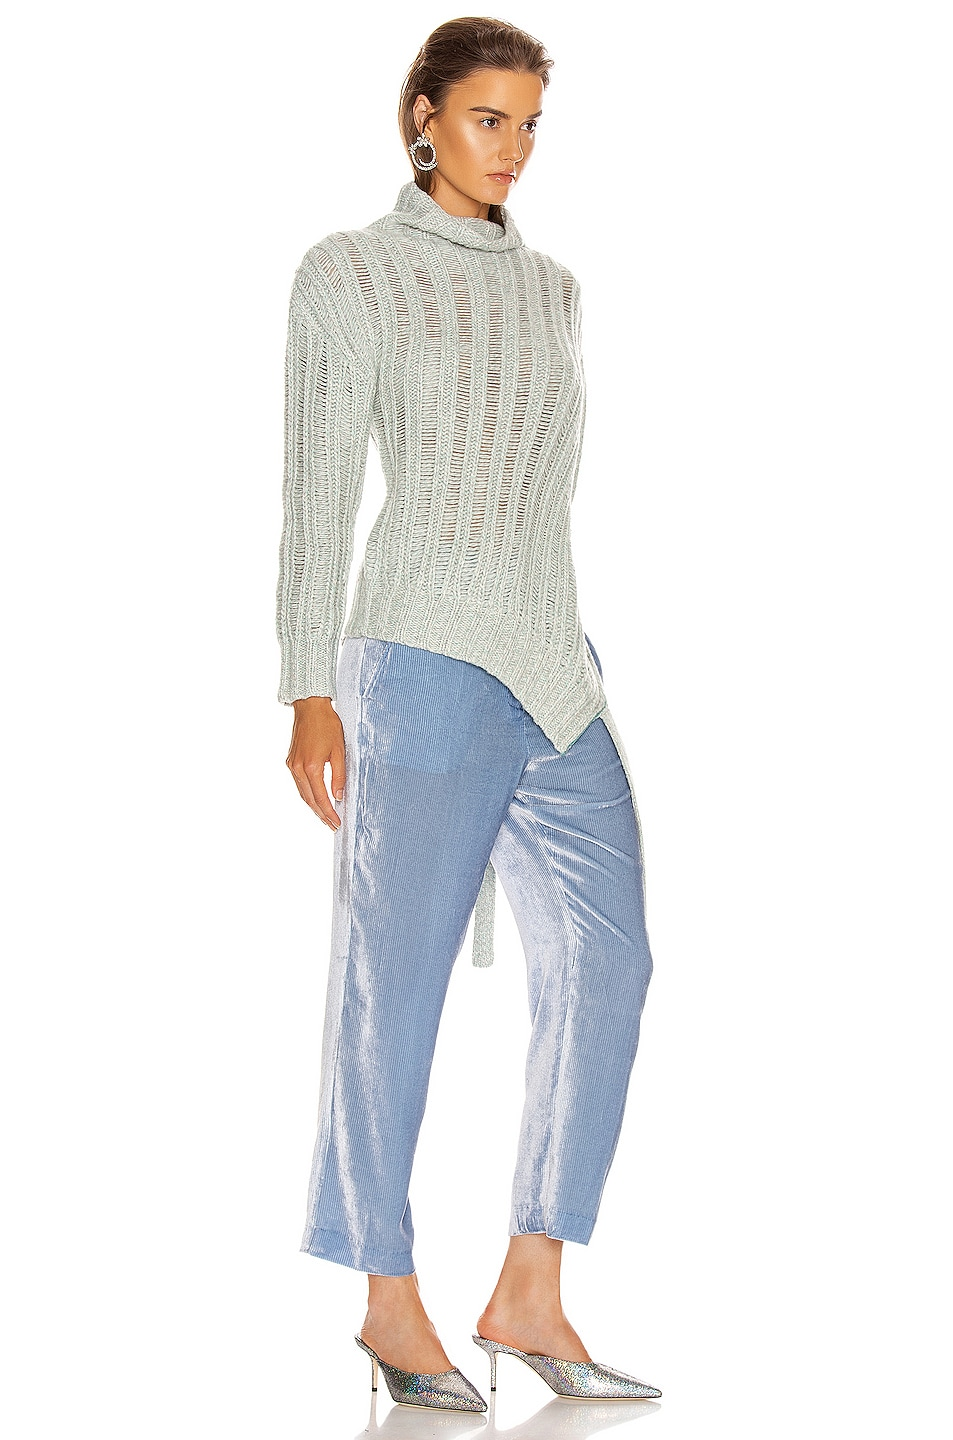 Image 2 of Sies Marjan Nancy Cashmere Turtleneck Sweater in Blue Mint Melange